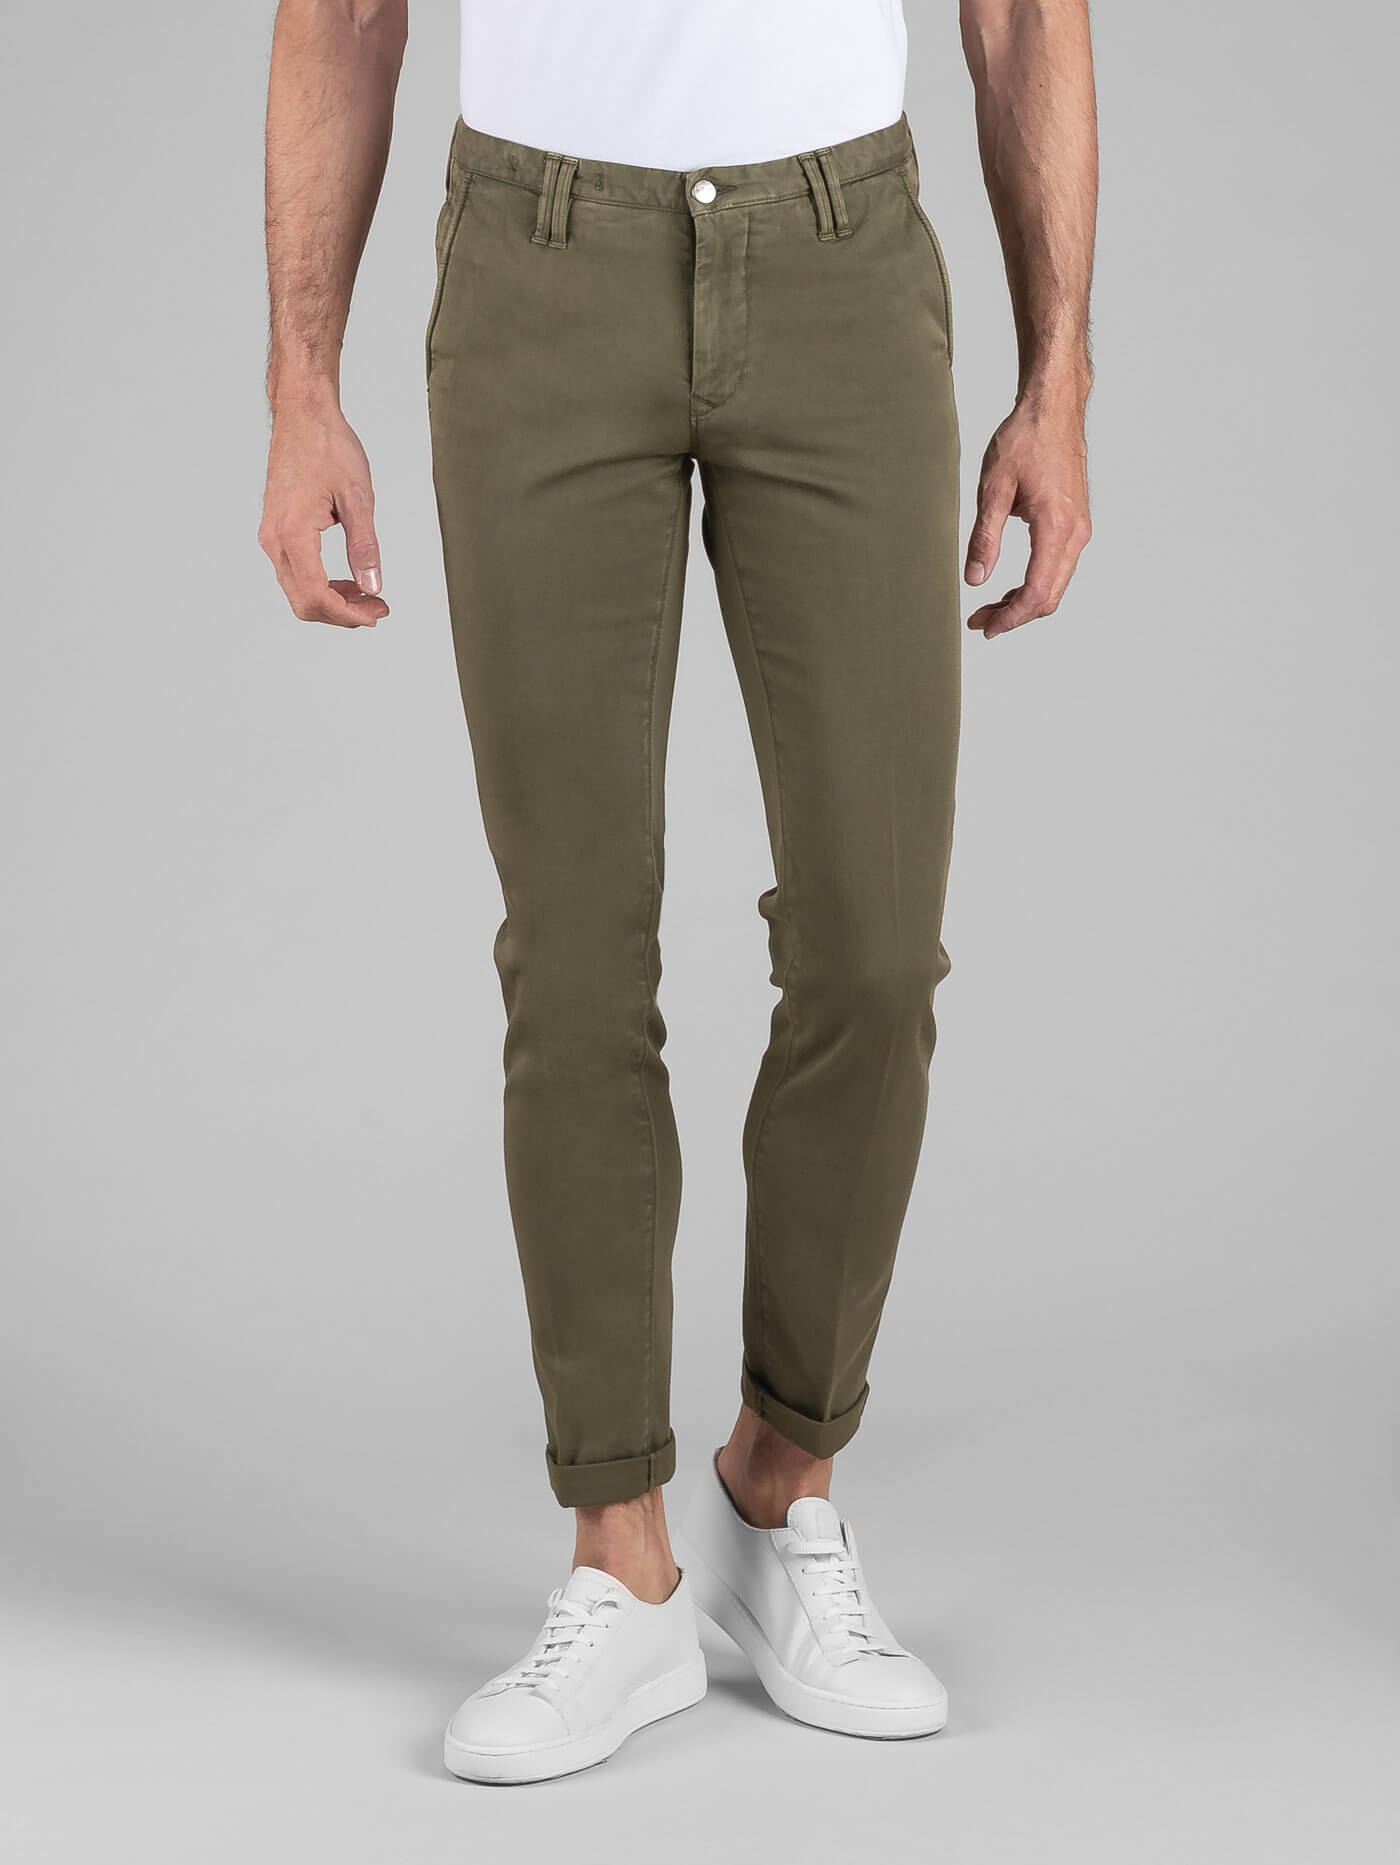 Pant. Clay Gabardina Diagonale Stretch Militare